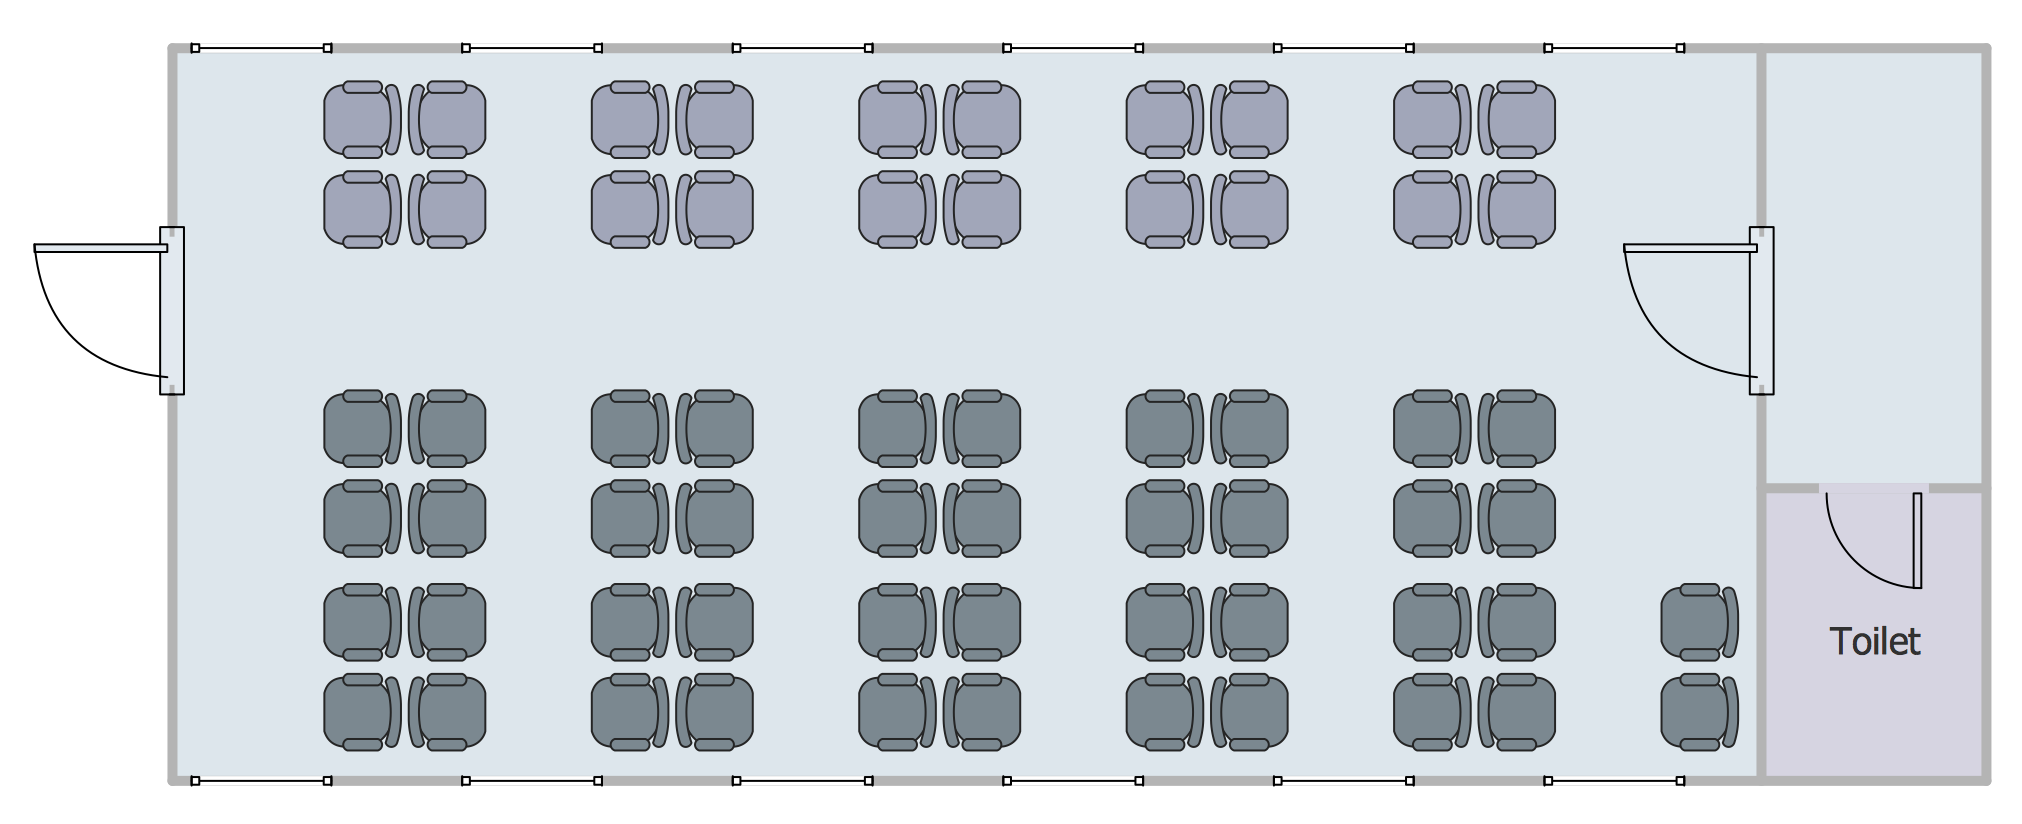 Train Seating Plan